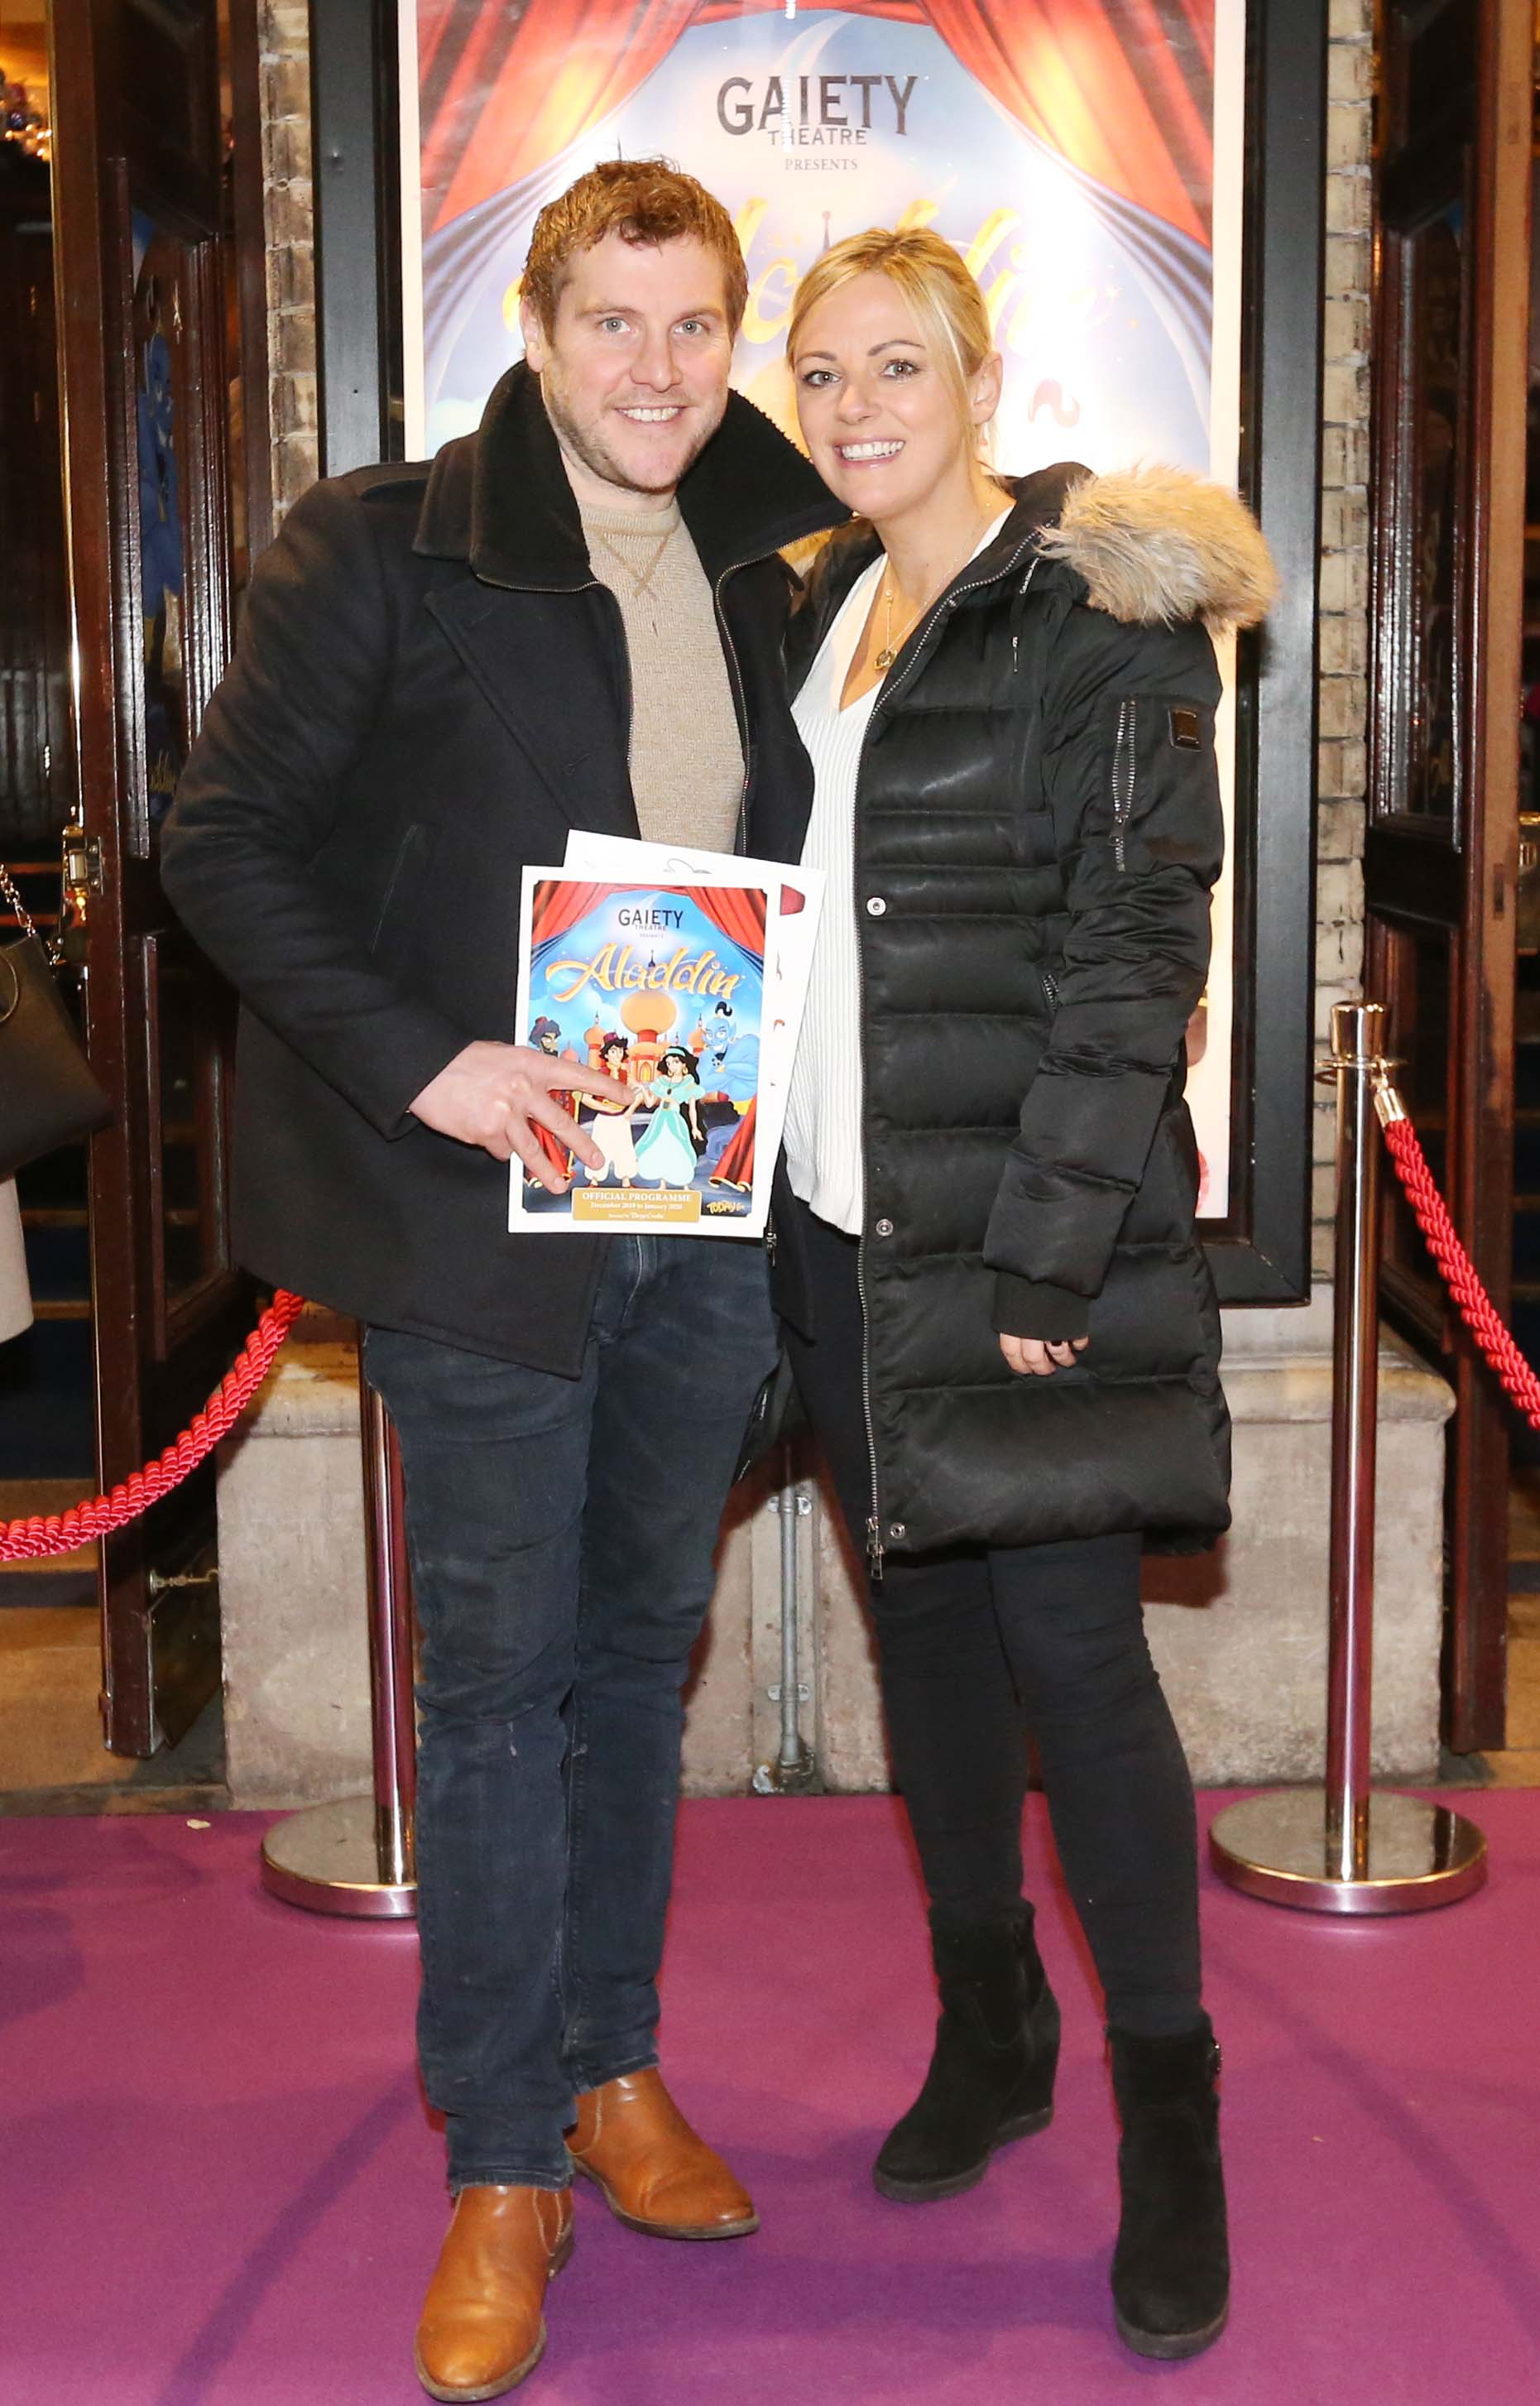 Pictured are (LtoR)  Peter Cunningham and Kim Driscoll at the official opening of the Gaiety Theatre Christmas Panto, Aladdin. Aladdin opens at the Gaiety Theatre Sunday 24th November. Photo: Sasko Lazarov/Photocall Ireland